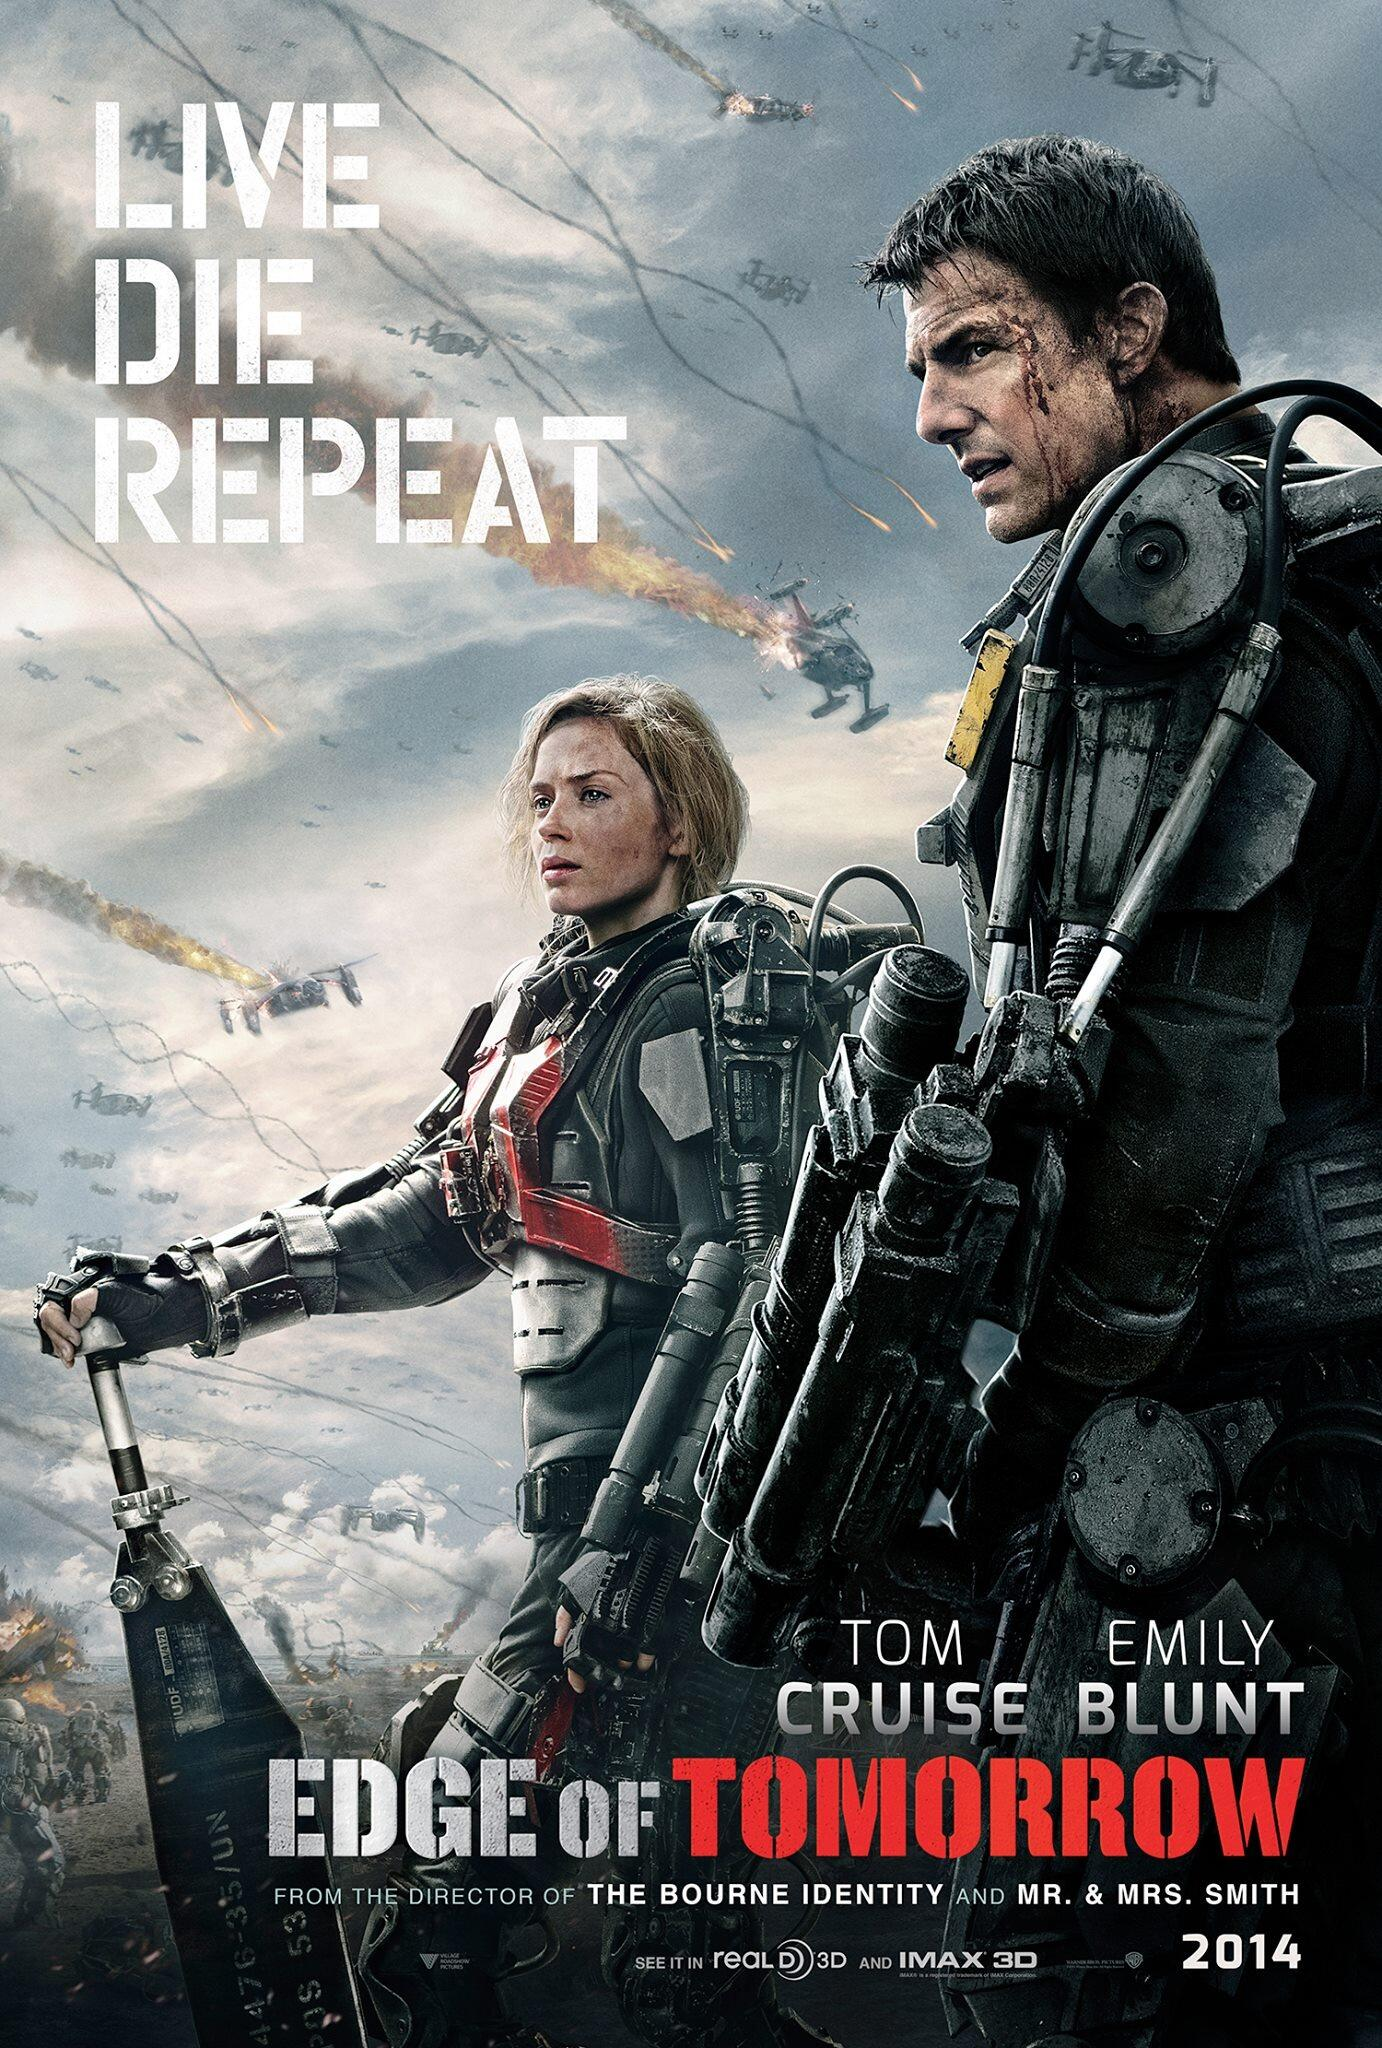 Official #EdgeOfTomorrow http://t.co/mc5UIxNMws @EdgeofTomorrow @EmbeddedUDF http://t.co/uAlzZJZWFa #LiveDieRepeat http://t.co/Seye0L64Tr